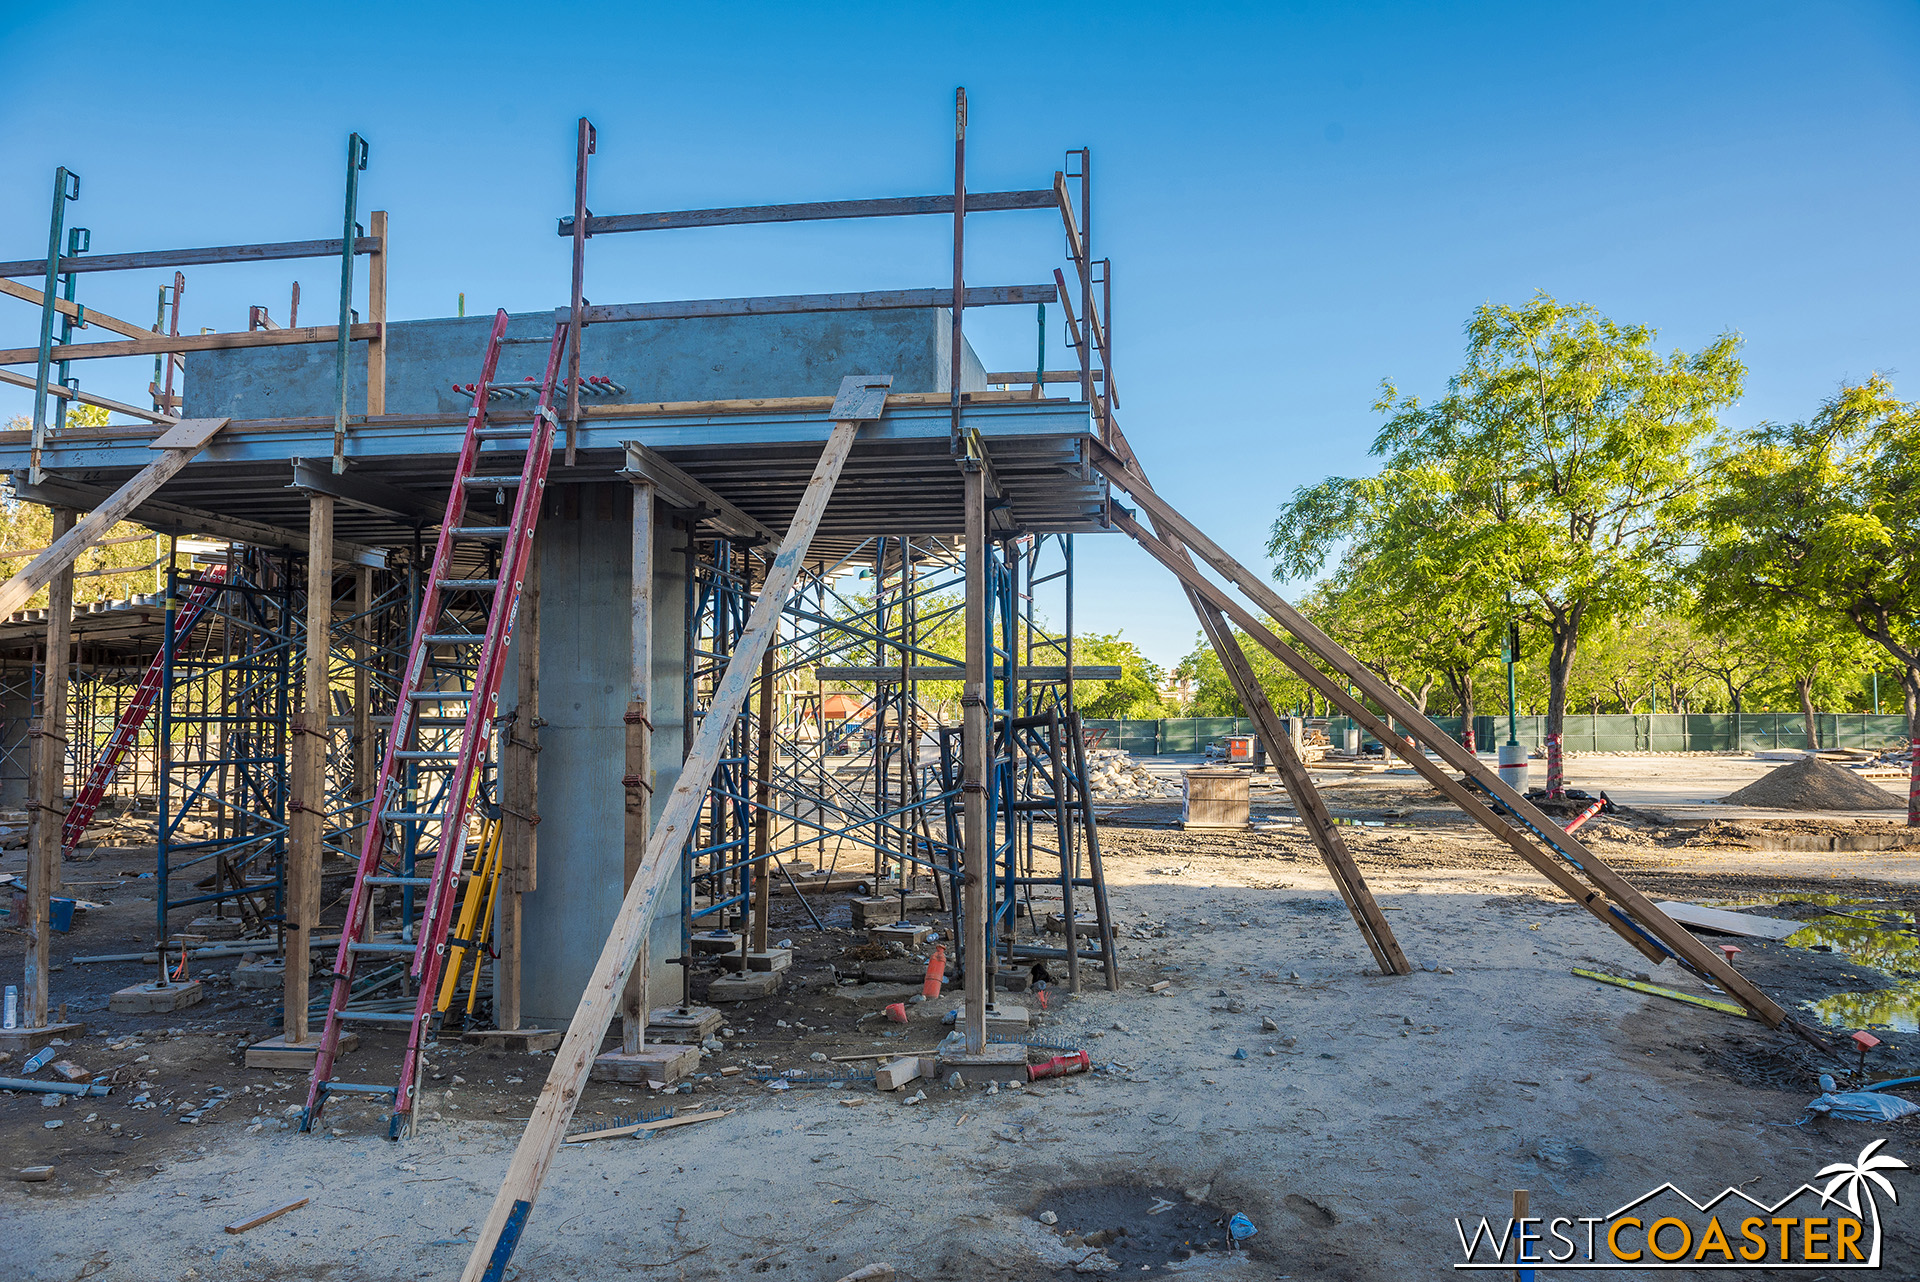 Everything else is formwork to cast the concrete that will turn and gently slope to the ground.